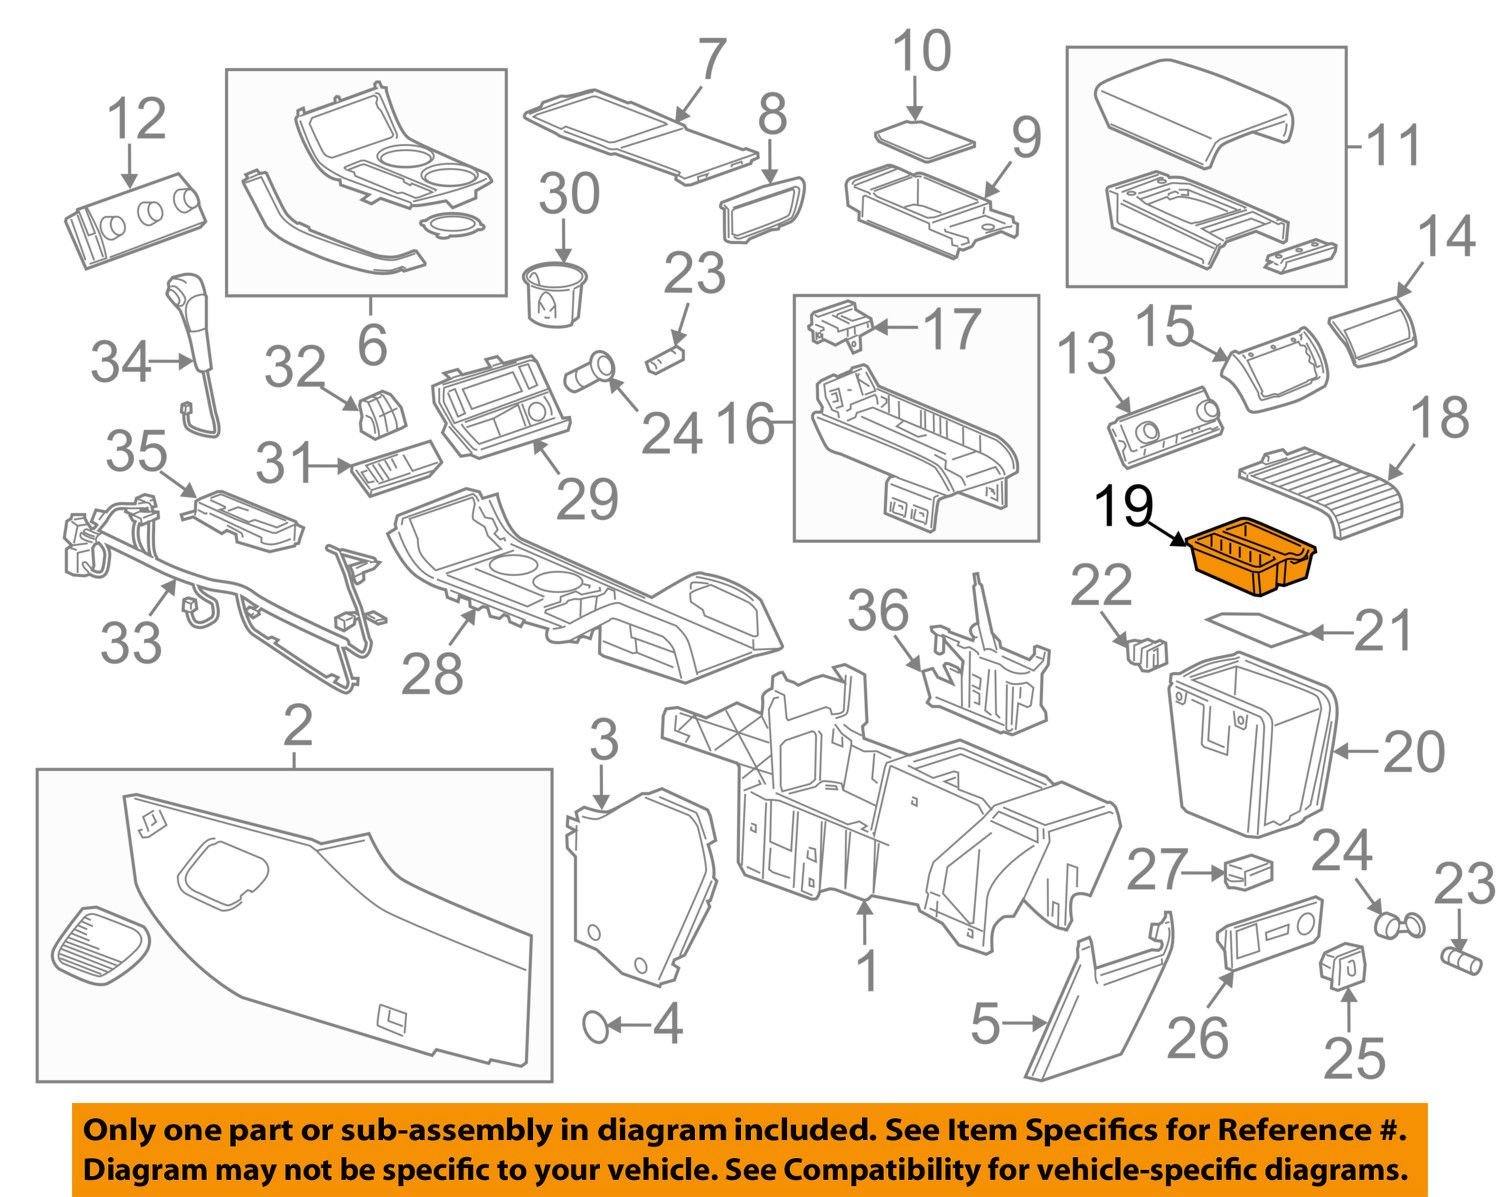 Swell 2011 Chevy Traverse Engine Diagram Basic Electronics Wiring Diagram Wiring 101 Taclepimsautoservicenl